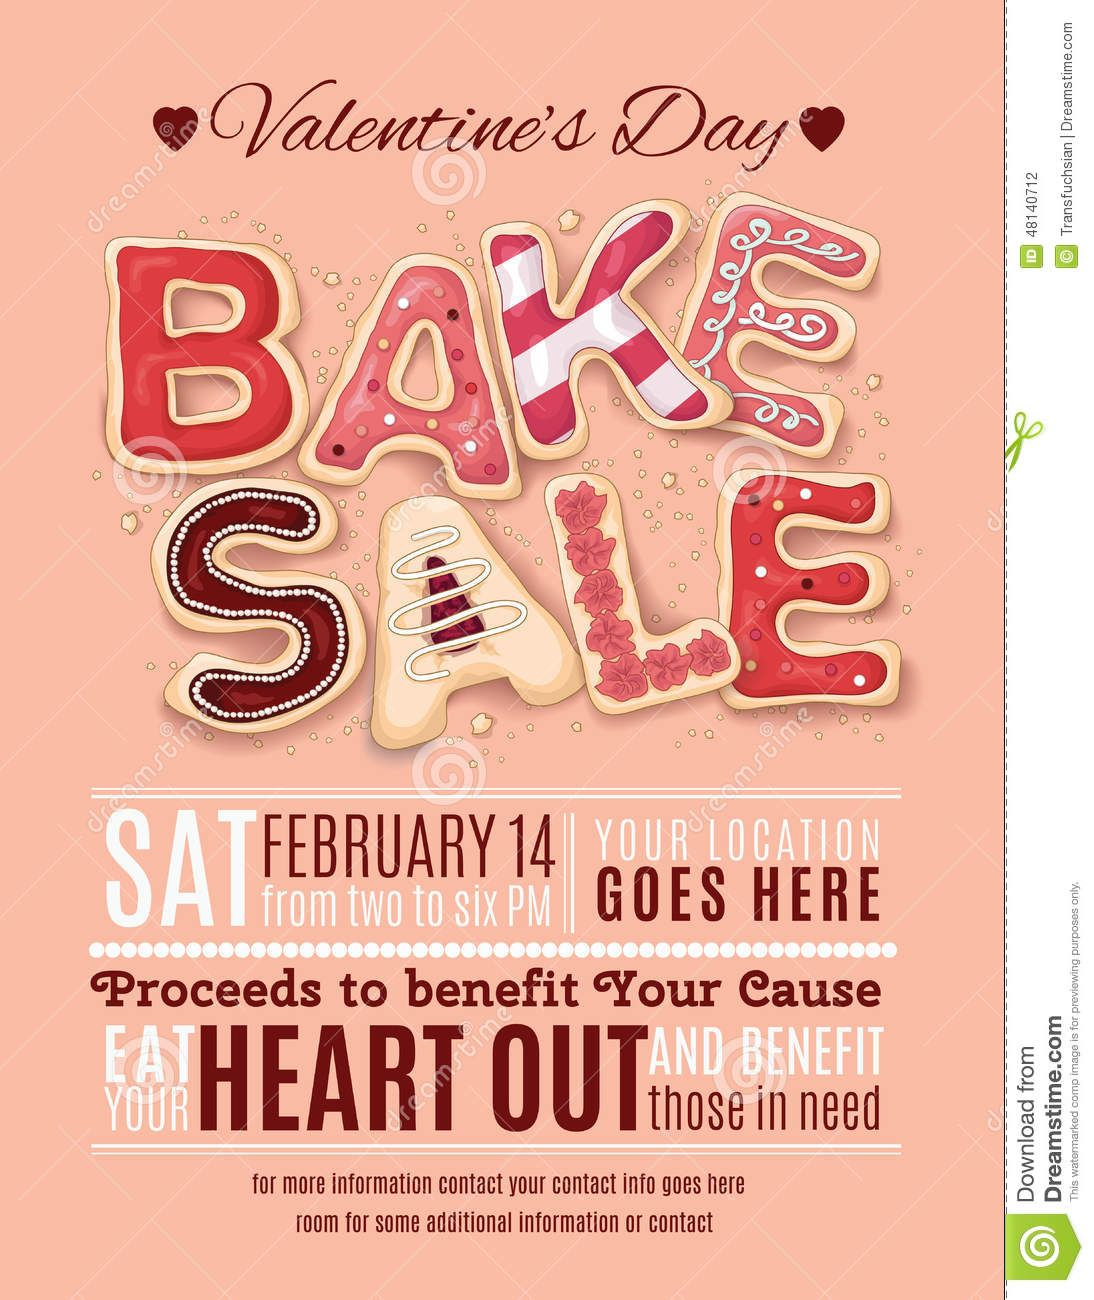 Valentines Day Bake Sale Flyer Template Download From